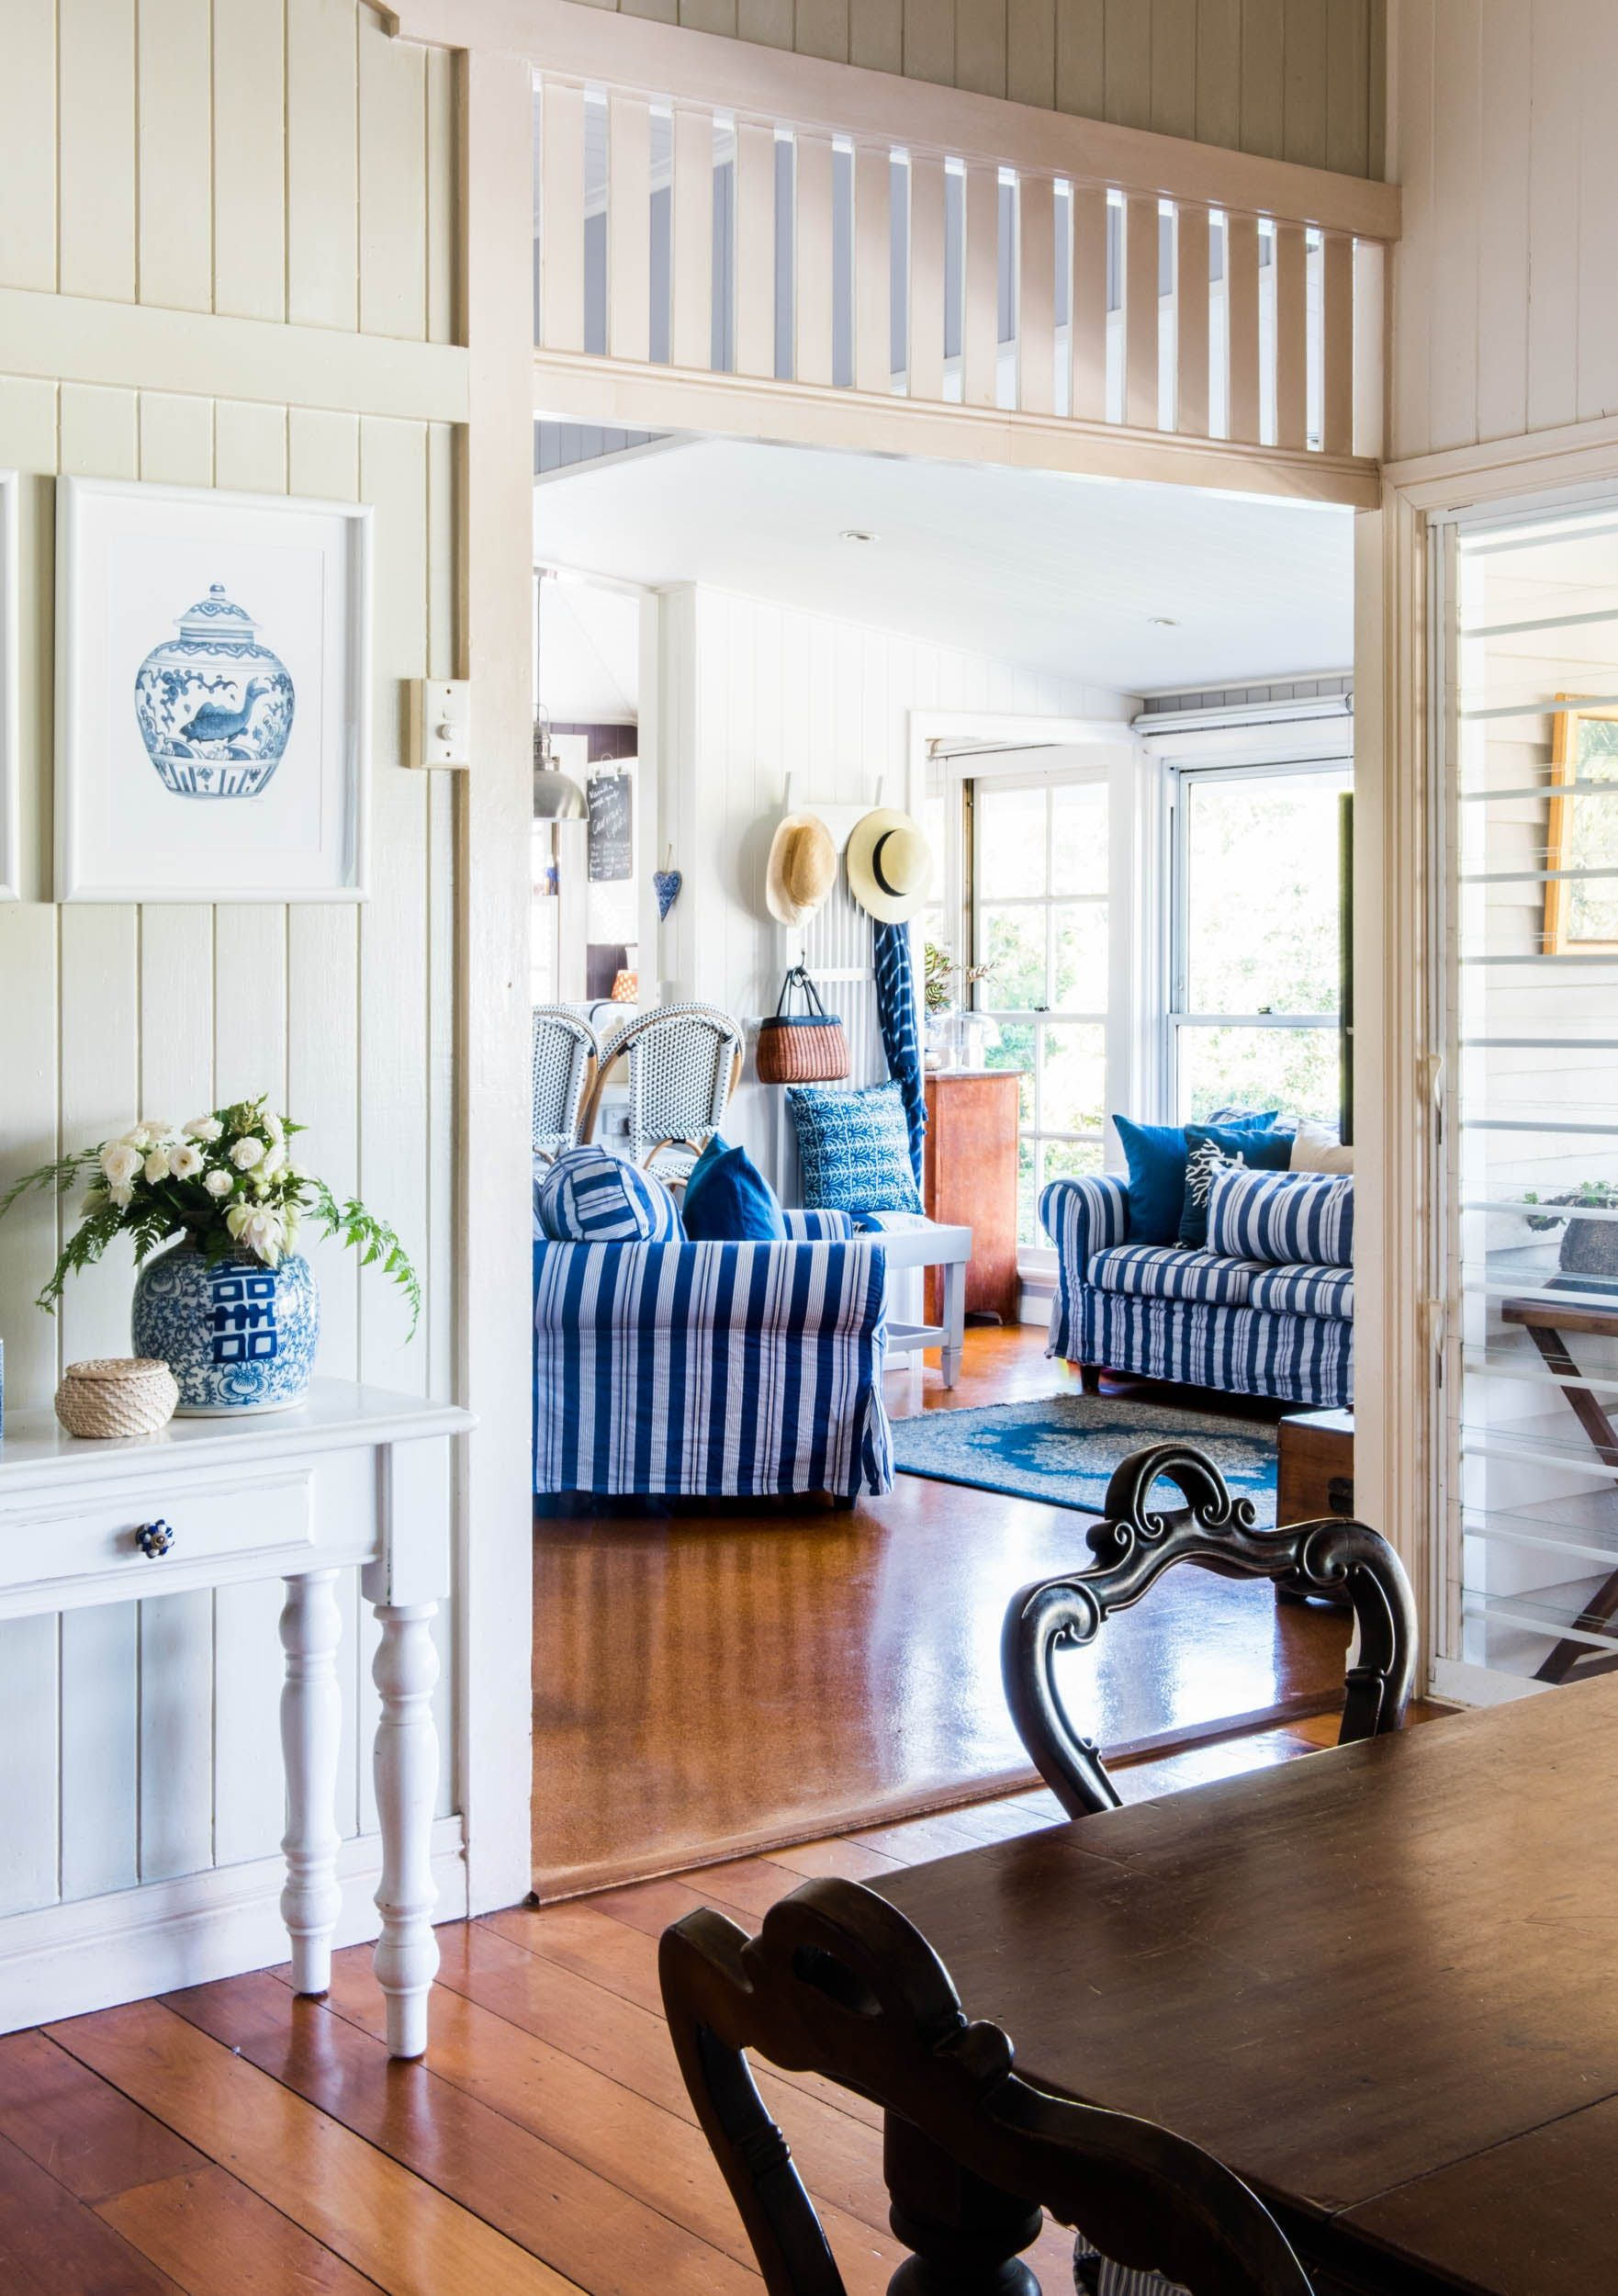 An Artist's Charming Blue and White Australian Cottage